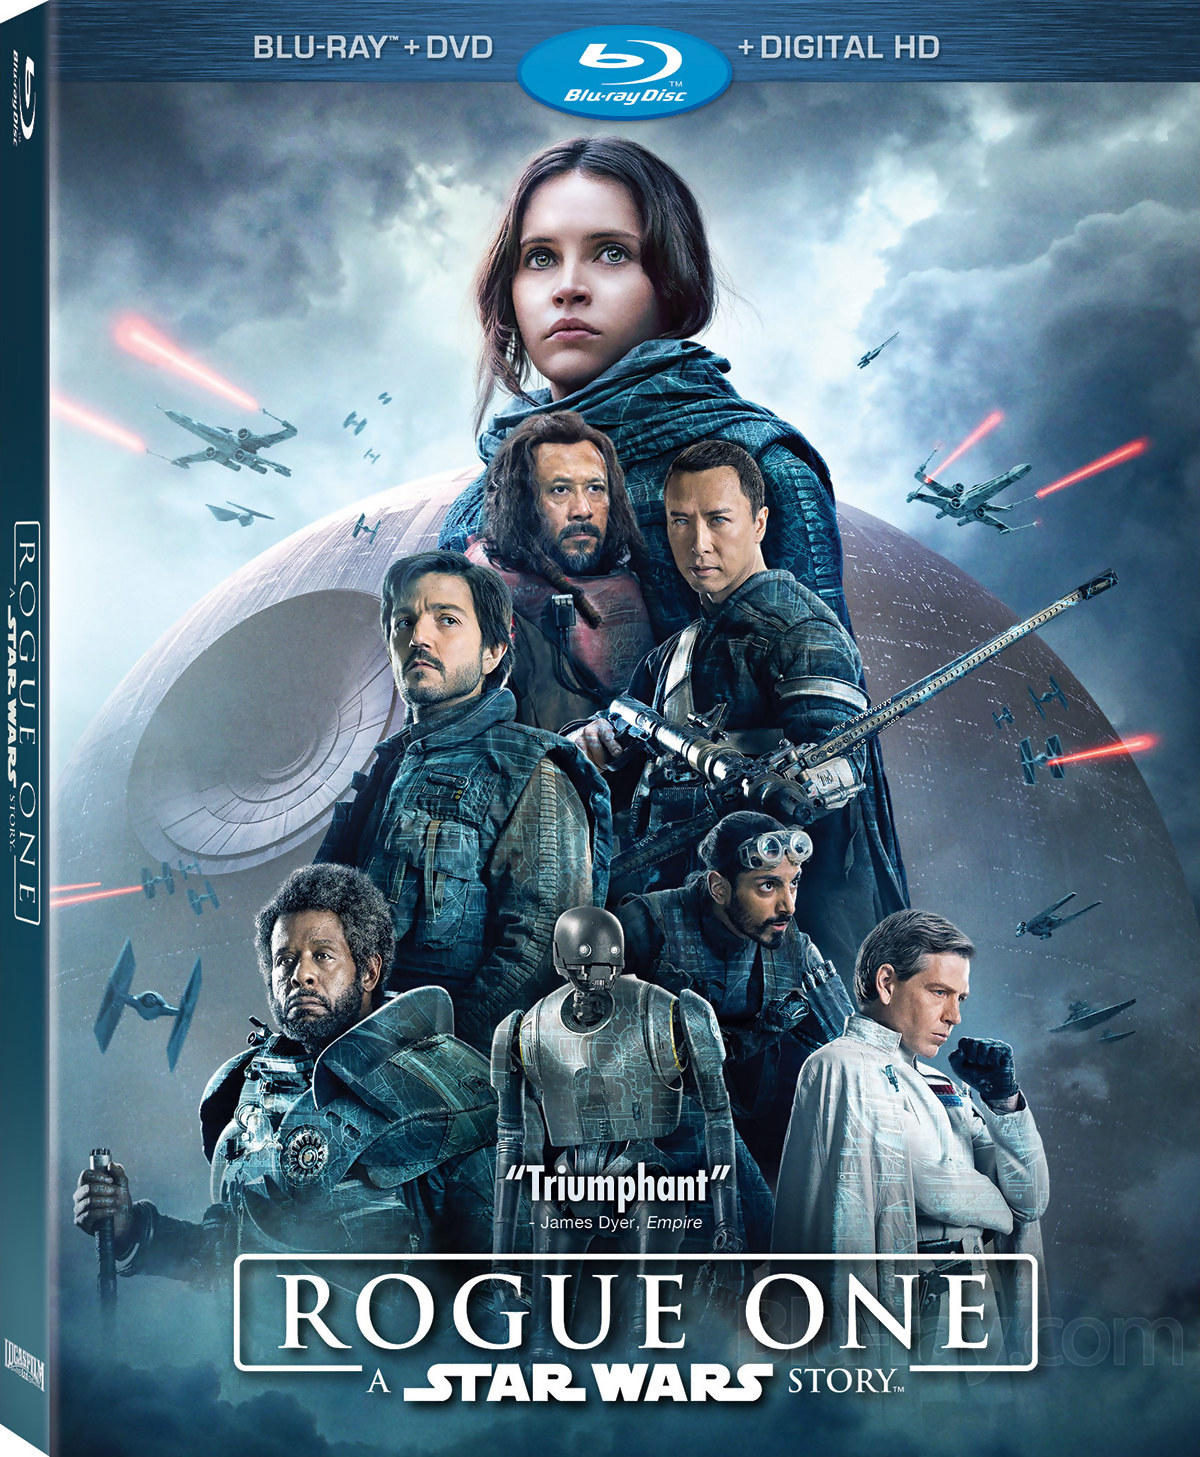 rogue one star wars story cover